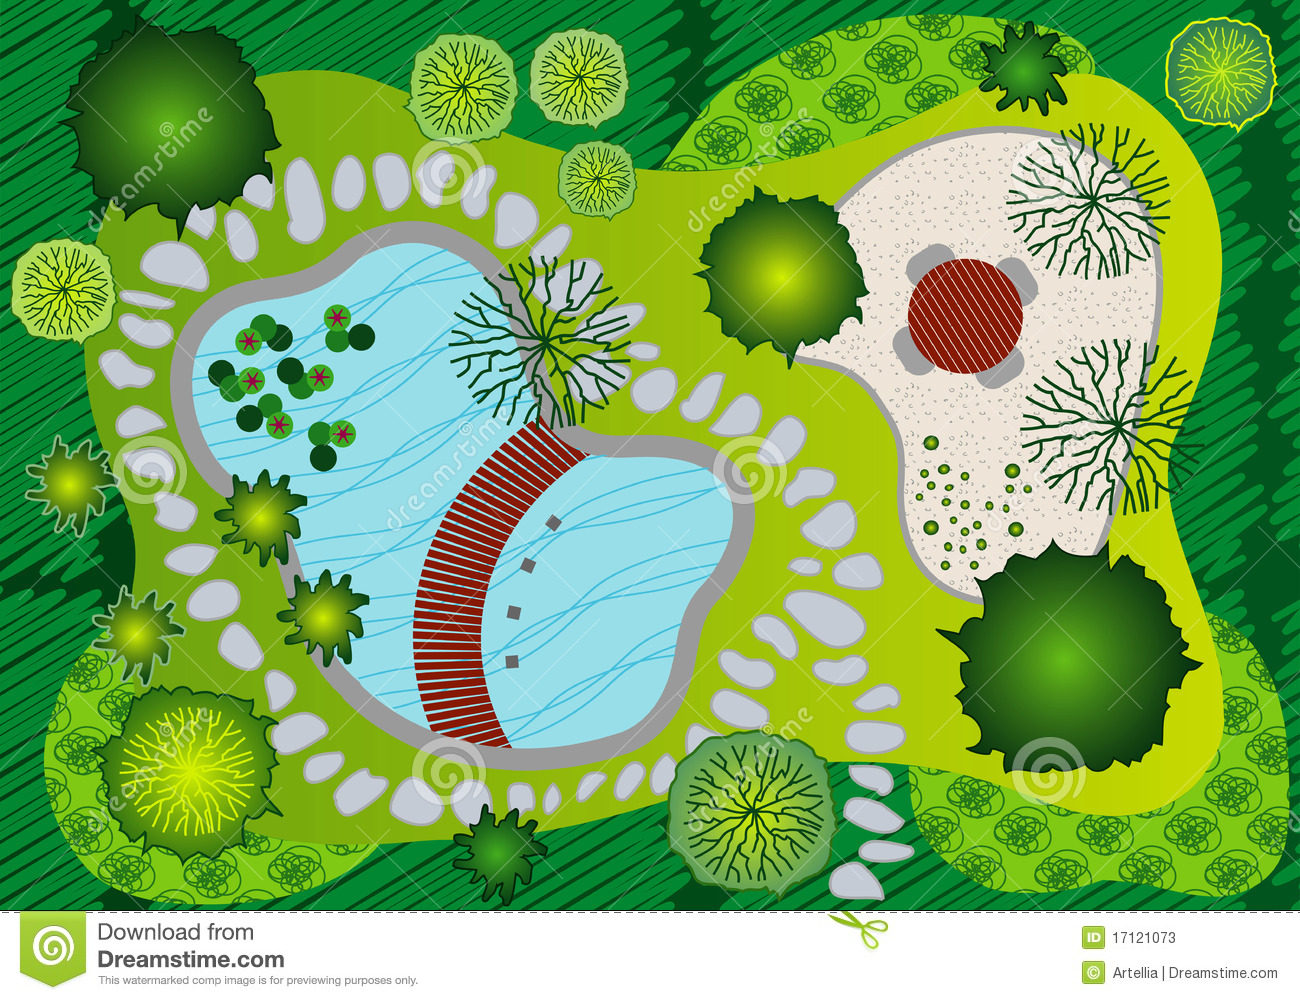 Plan landscape and garden design stock vector for Garden layout design